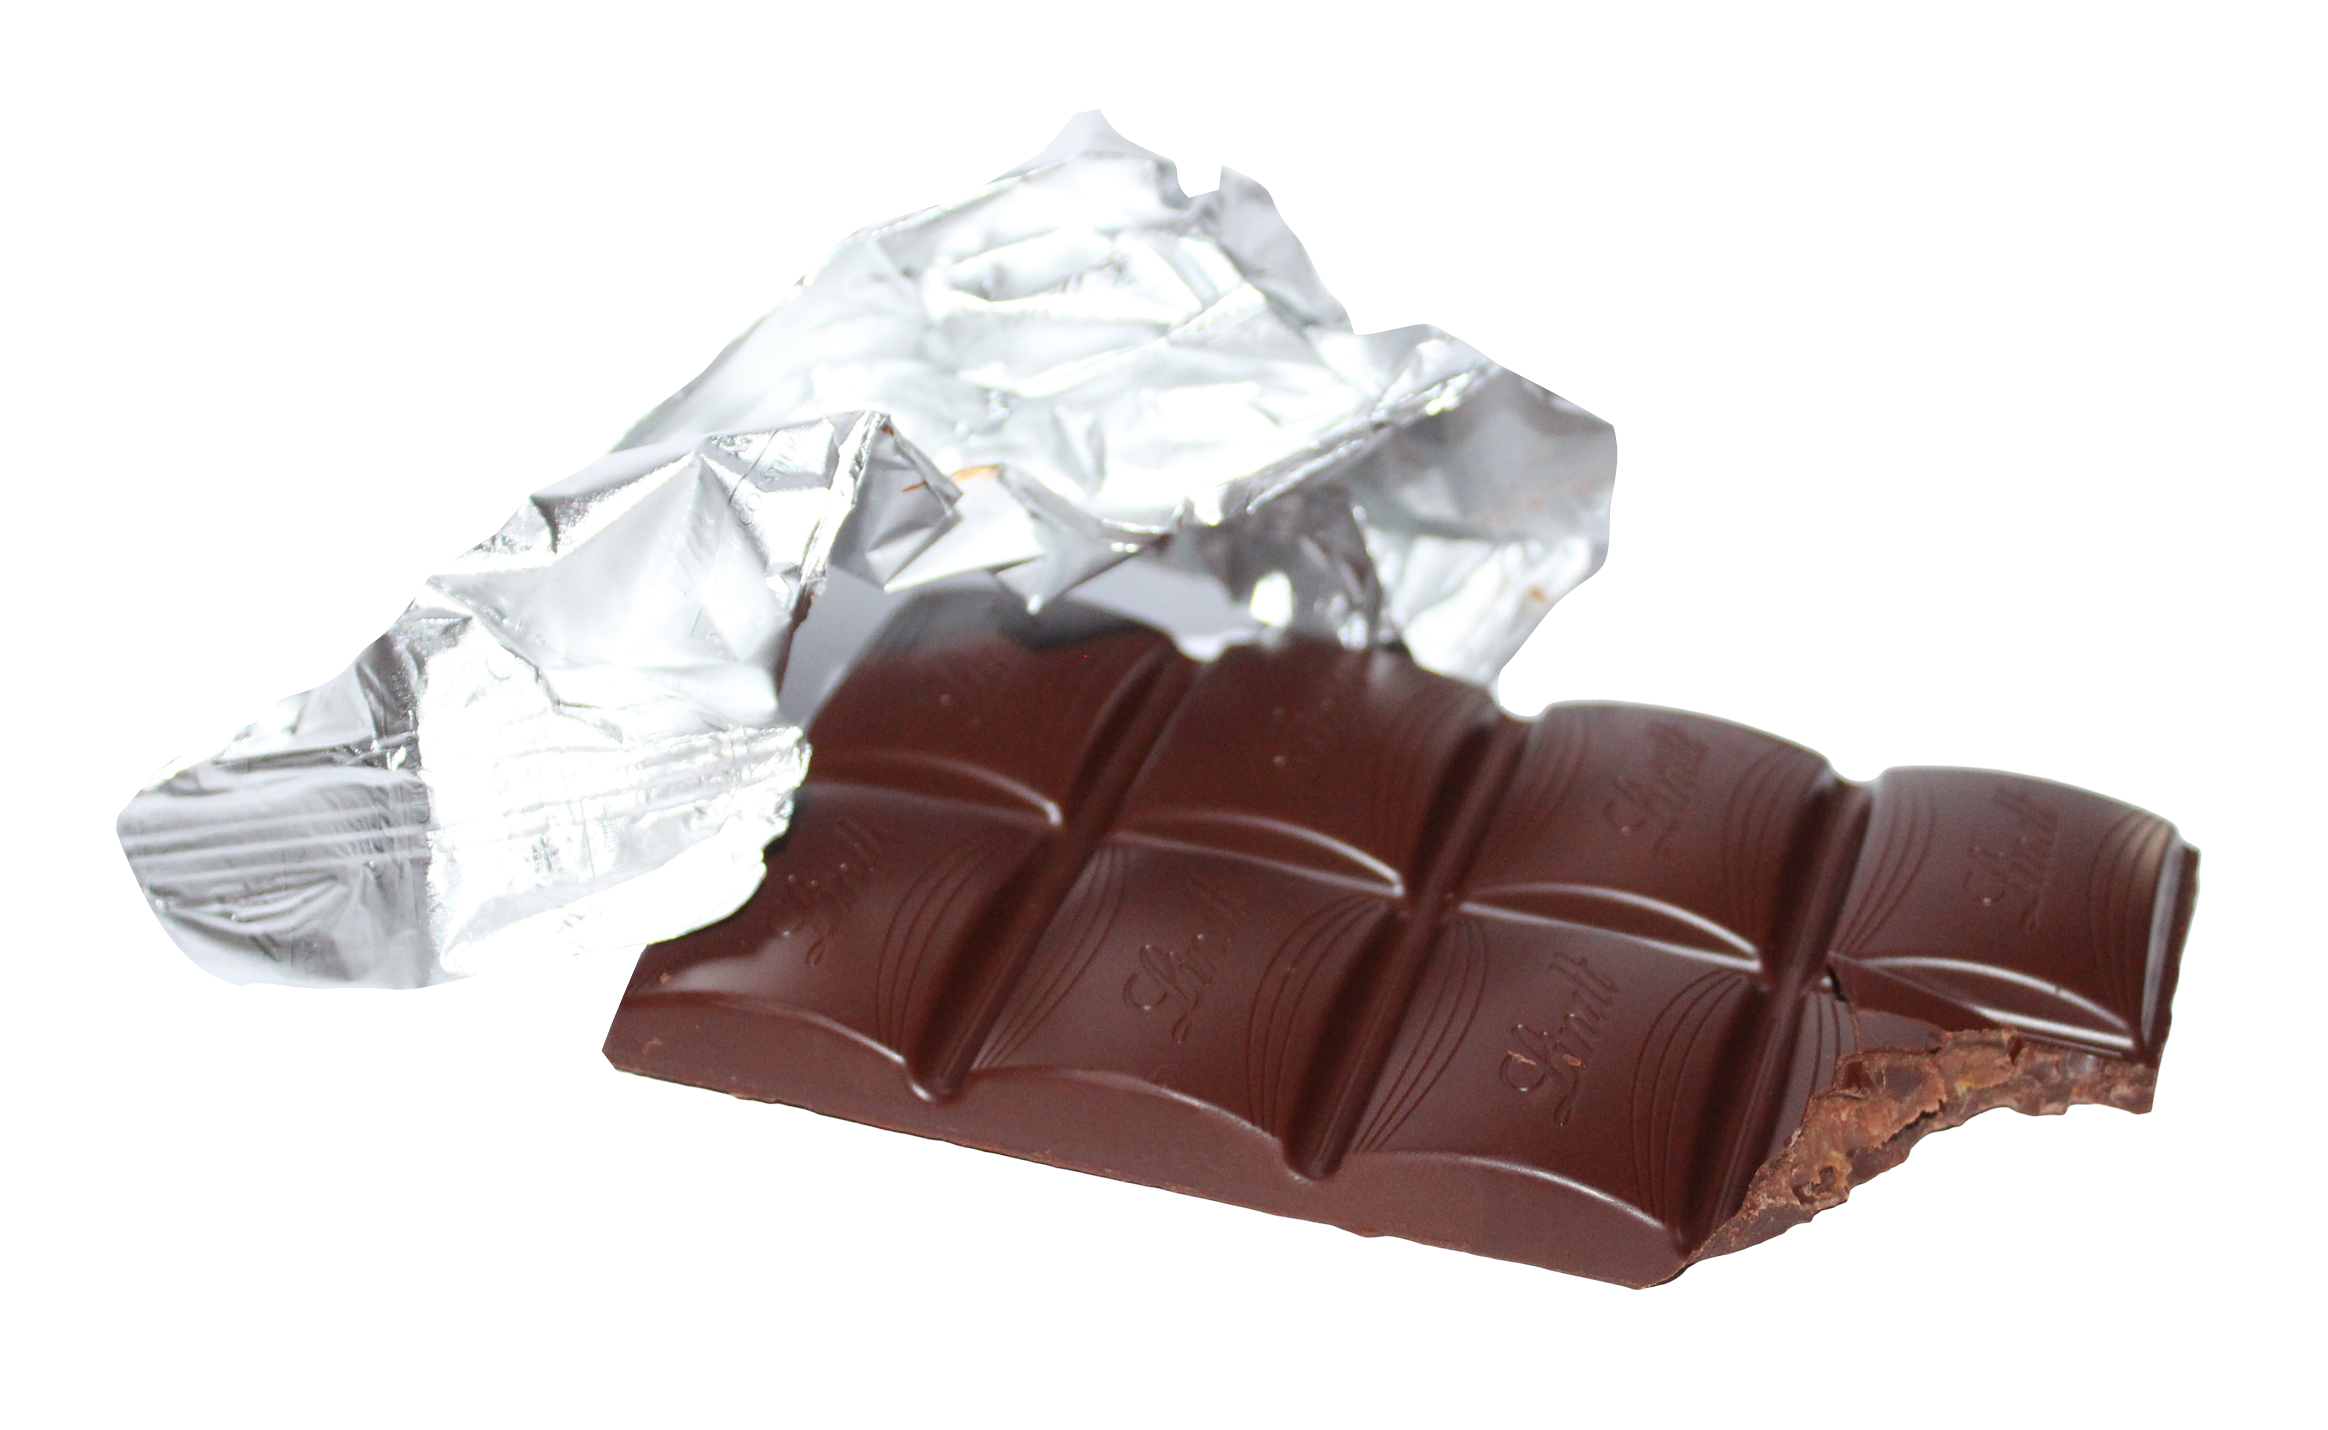 chocolate png transparent image pngpix #14367